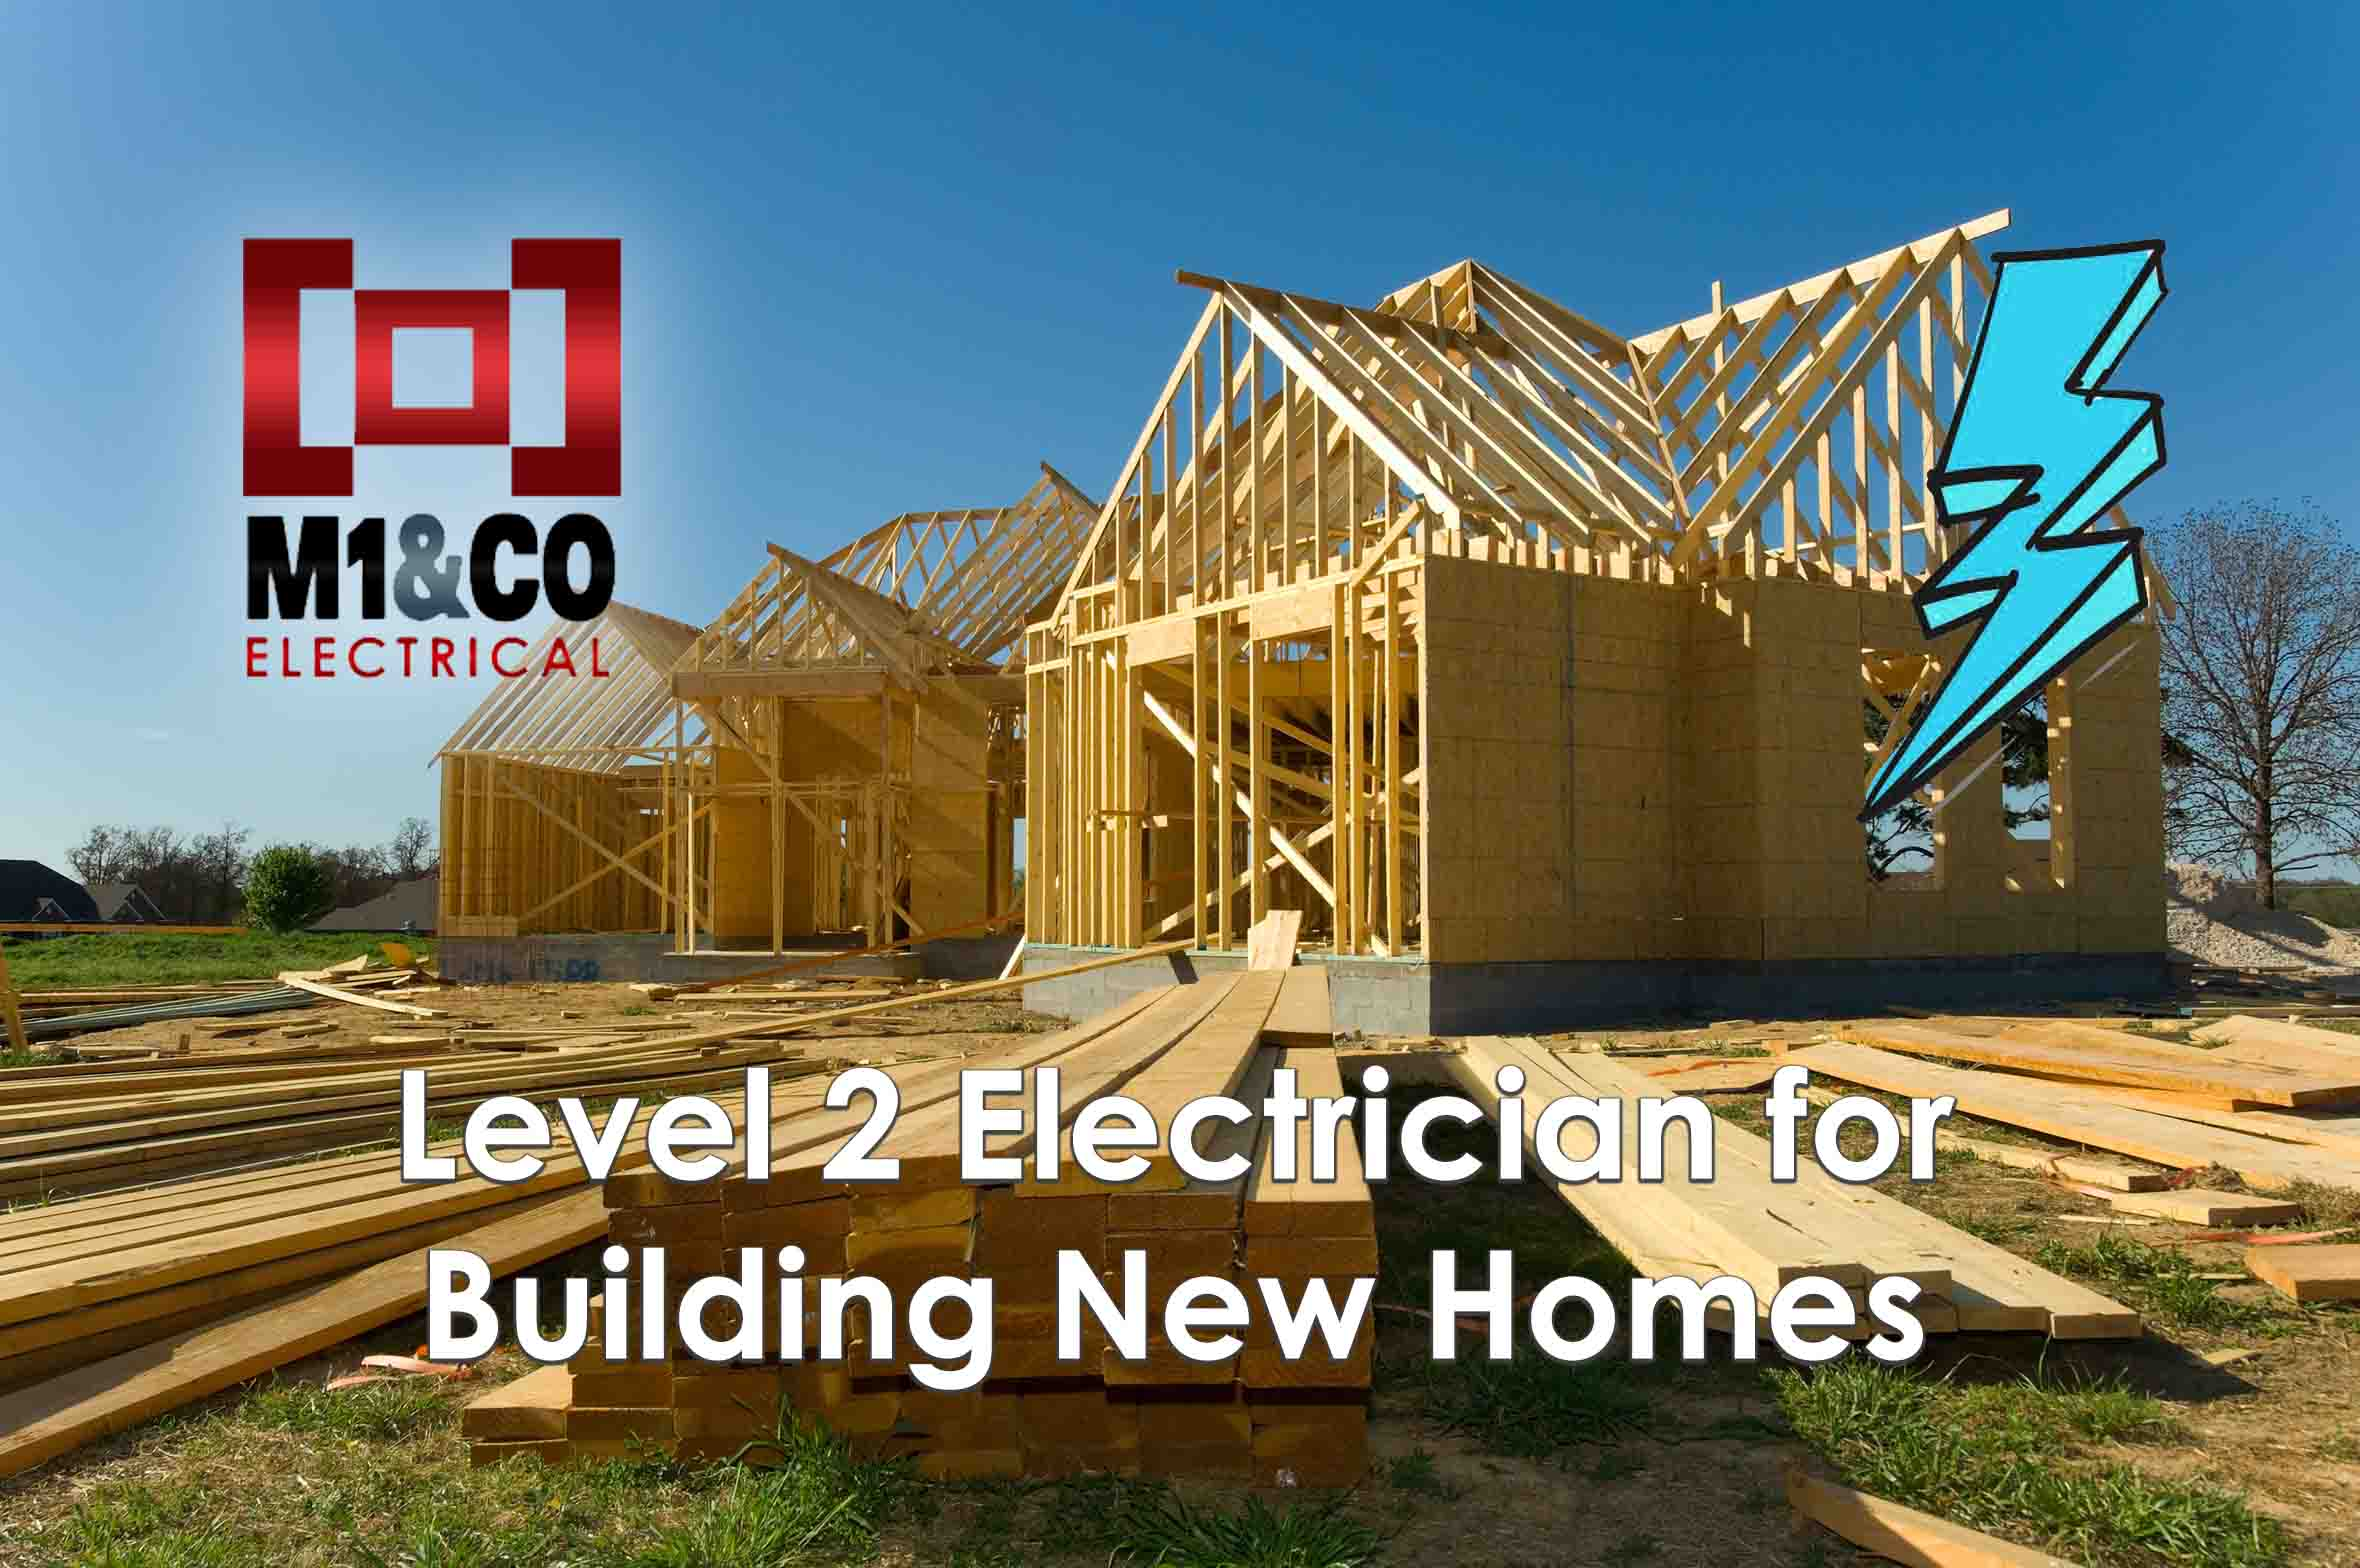 M1&CO - Level 2 Electrician for Building New Homes